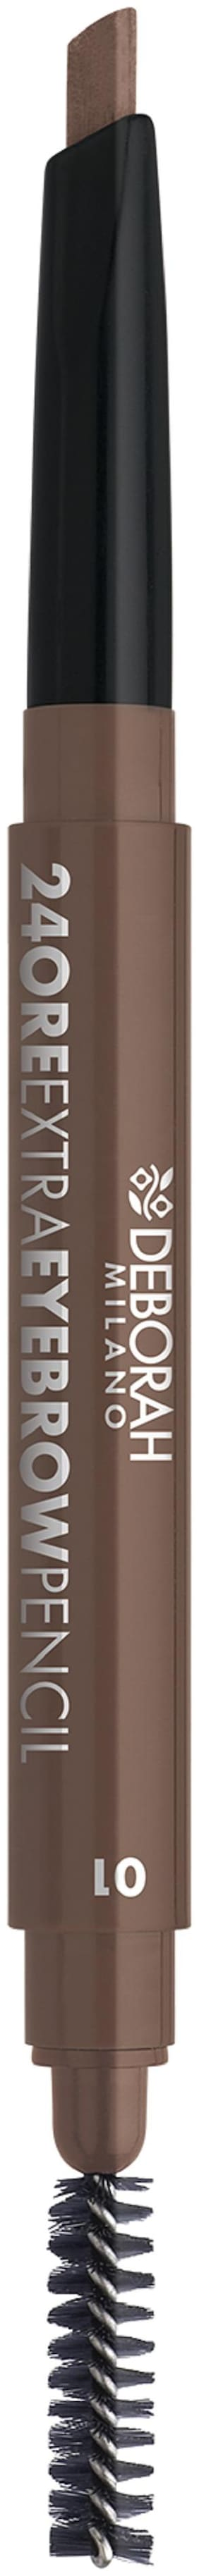 Deborah Milano 24ORE EXTRA Eyebrow Pencil 01 - Brown 0.22g